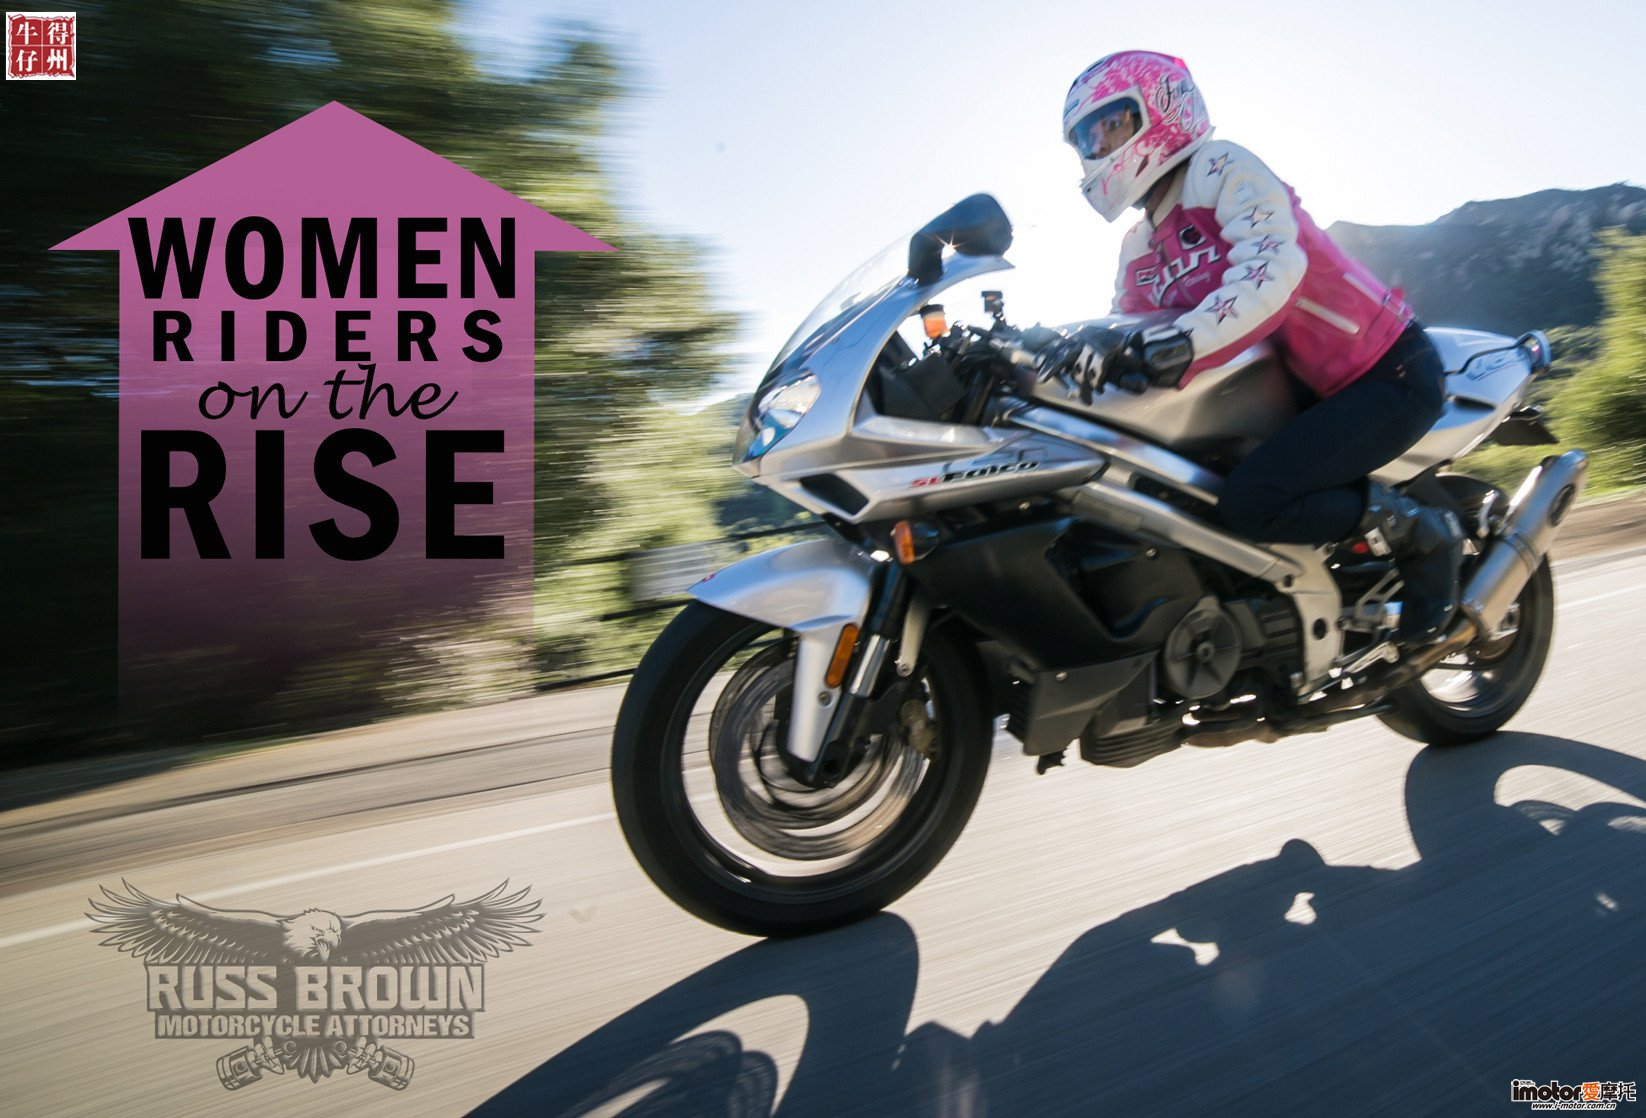 Women-Riders-on-the-Rise-Blog-Pic-2.jpg